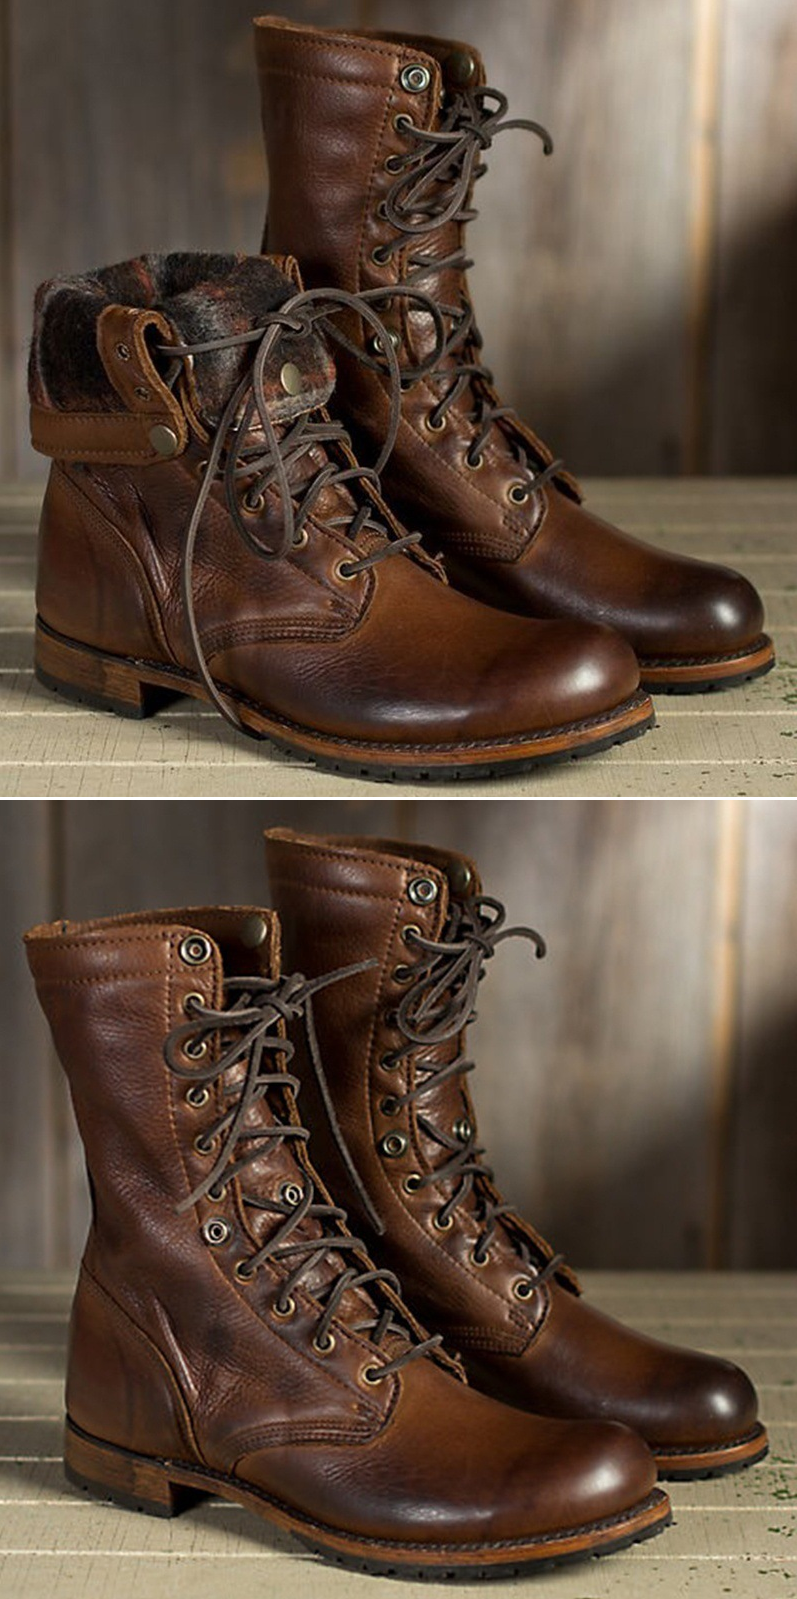 d912c430fb18  65.38 USD Sale! Free Shipping! Shop Now! Men Fashion High Quality Martin  Boots Leather Short Martin British Casual Boots